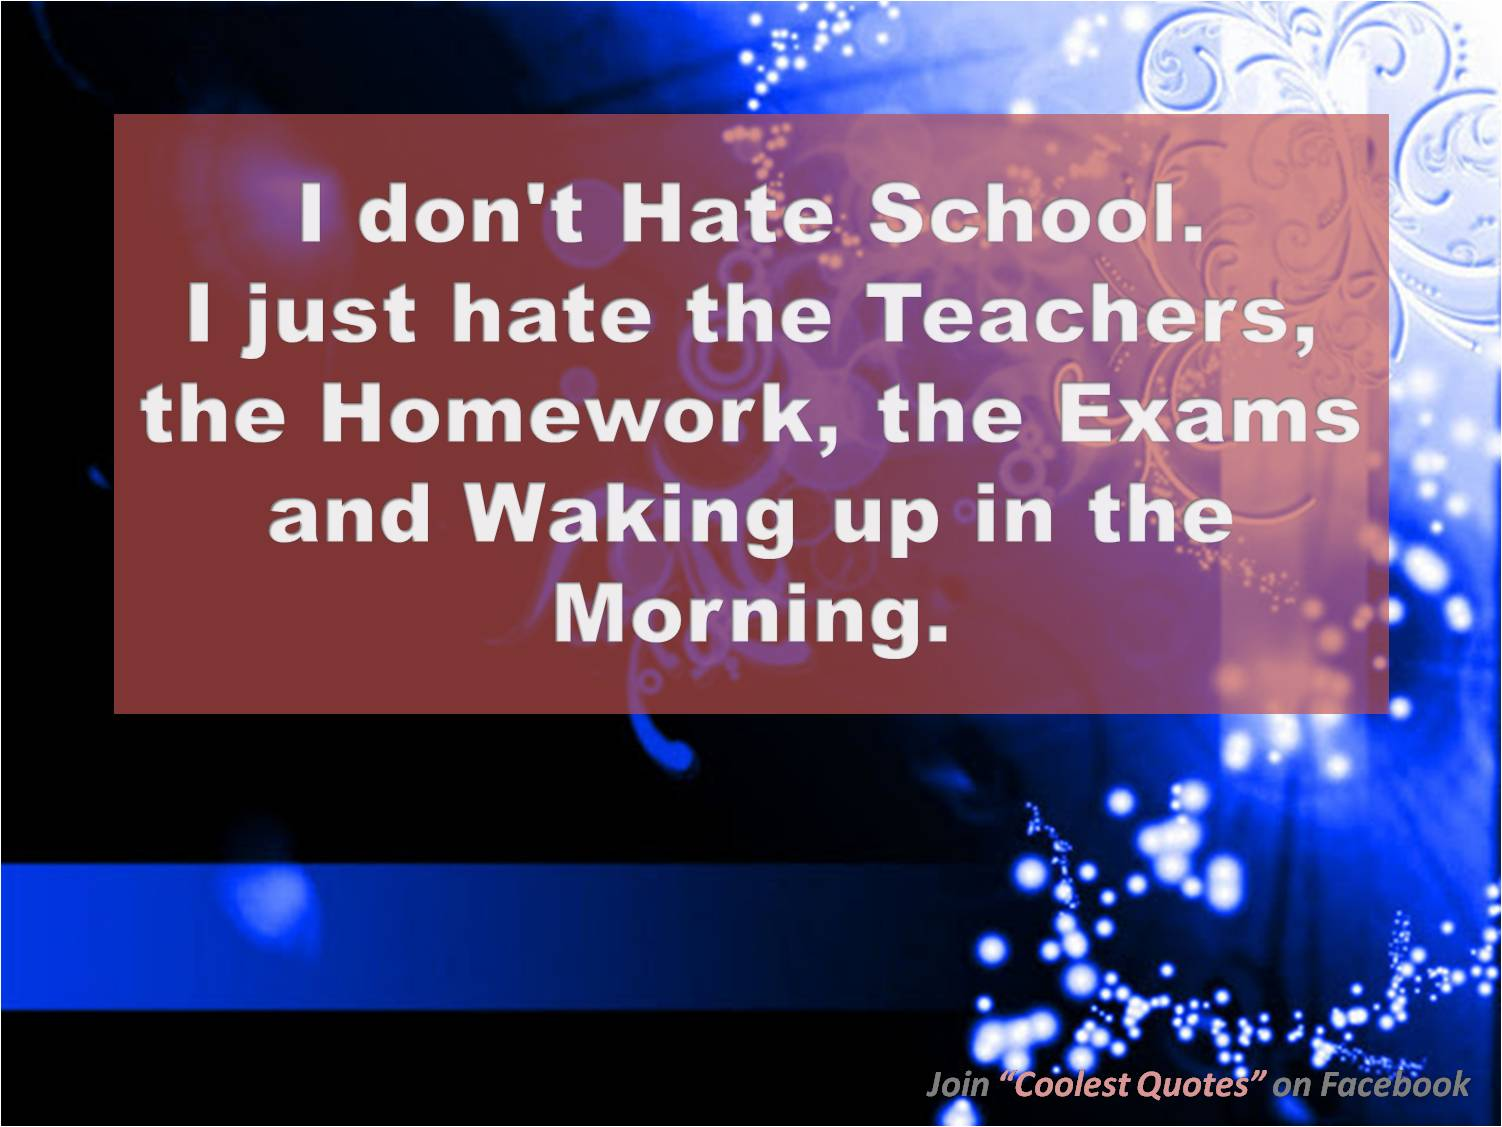 My Coolest Quotes: I Don't Hate School But